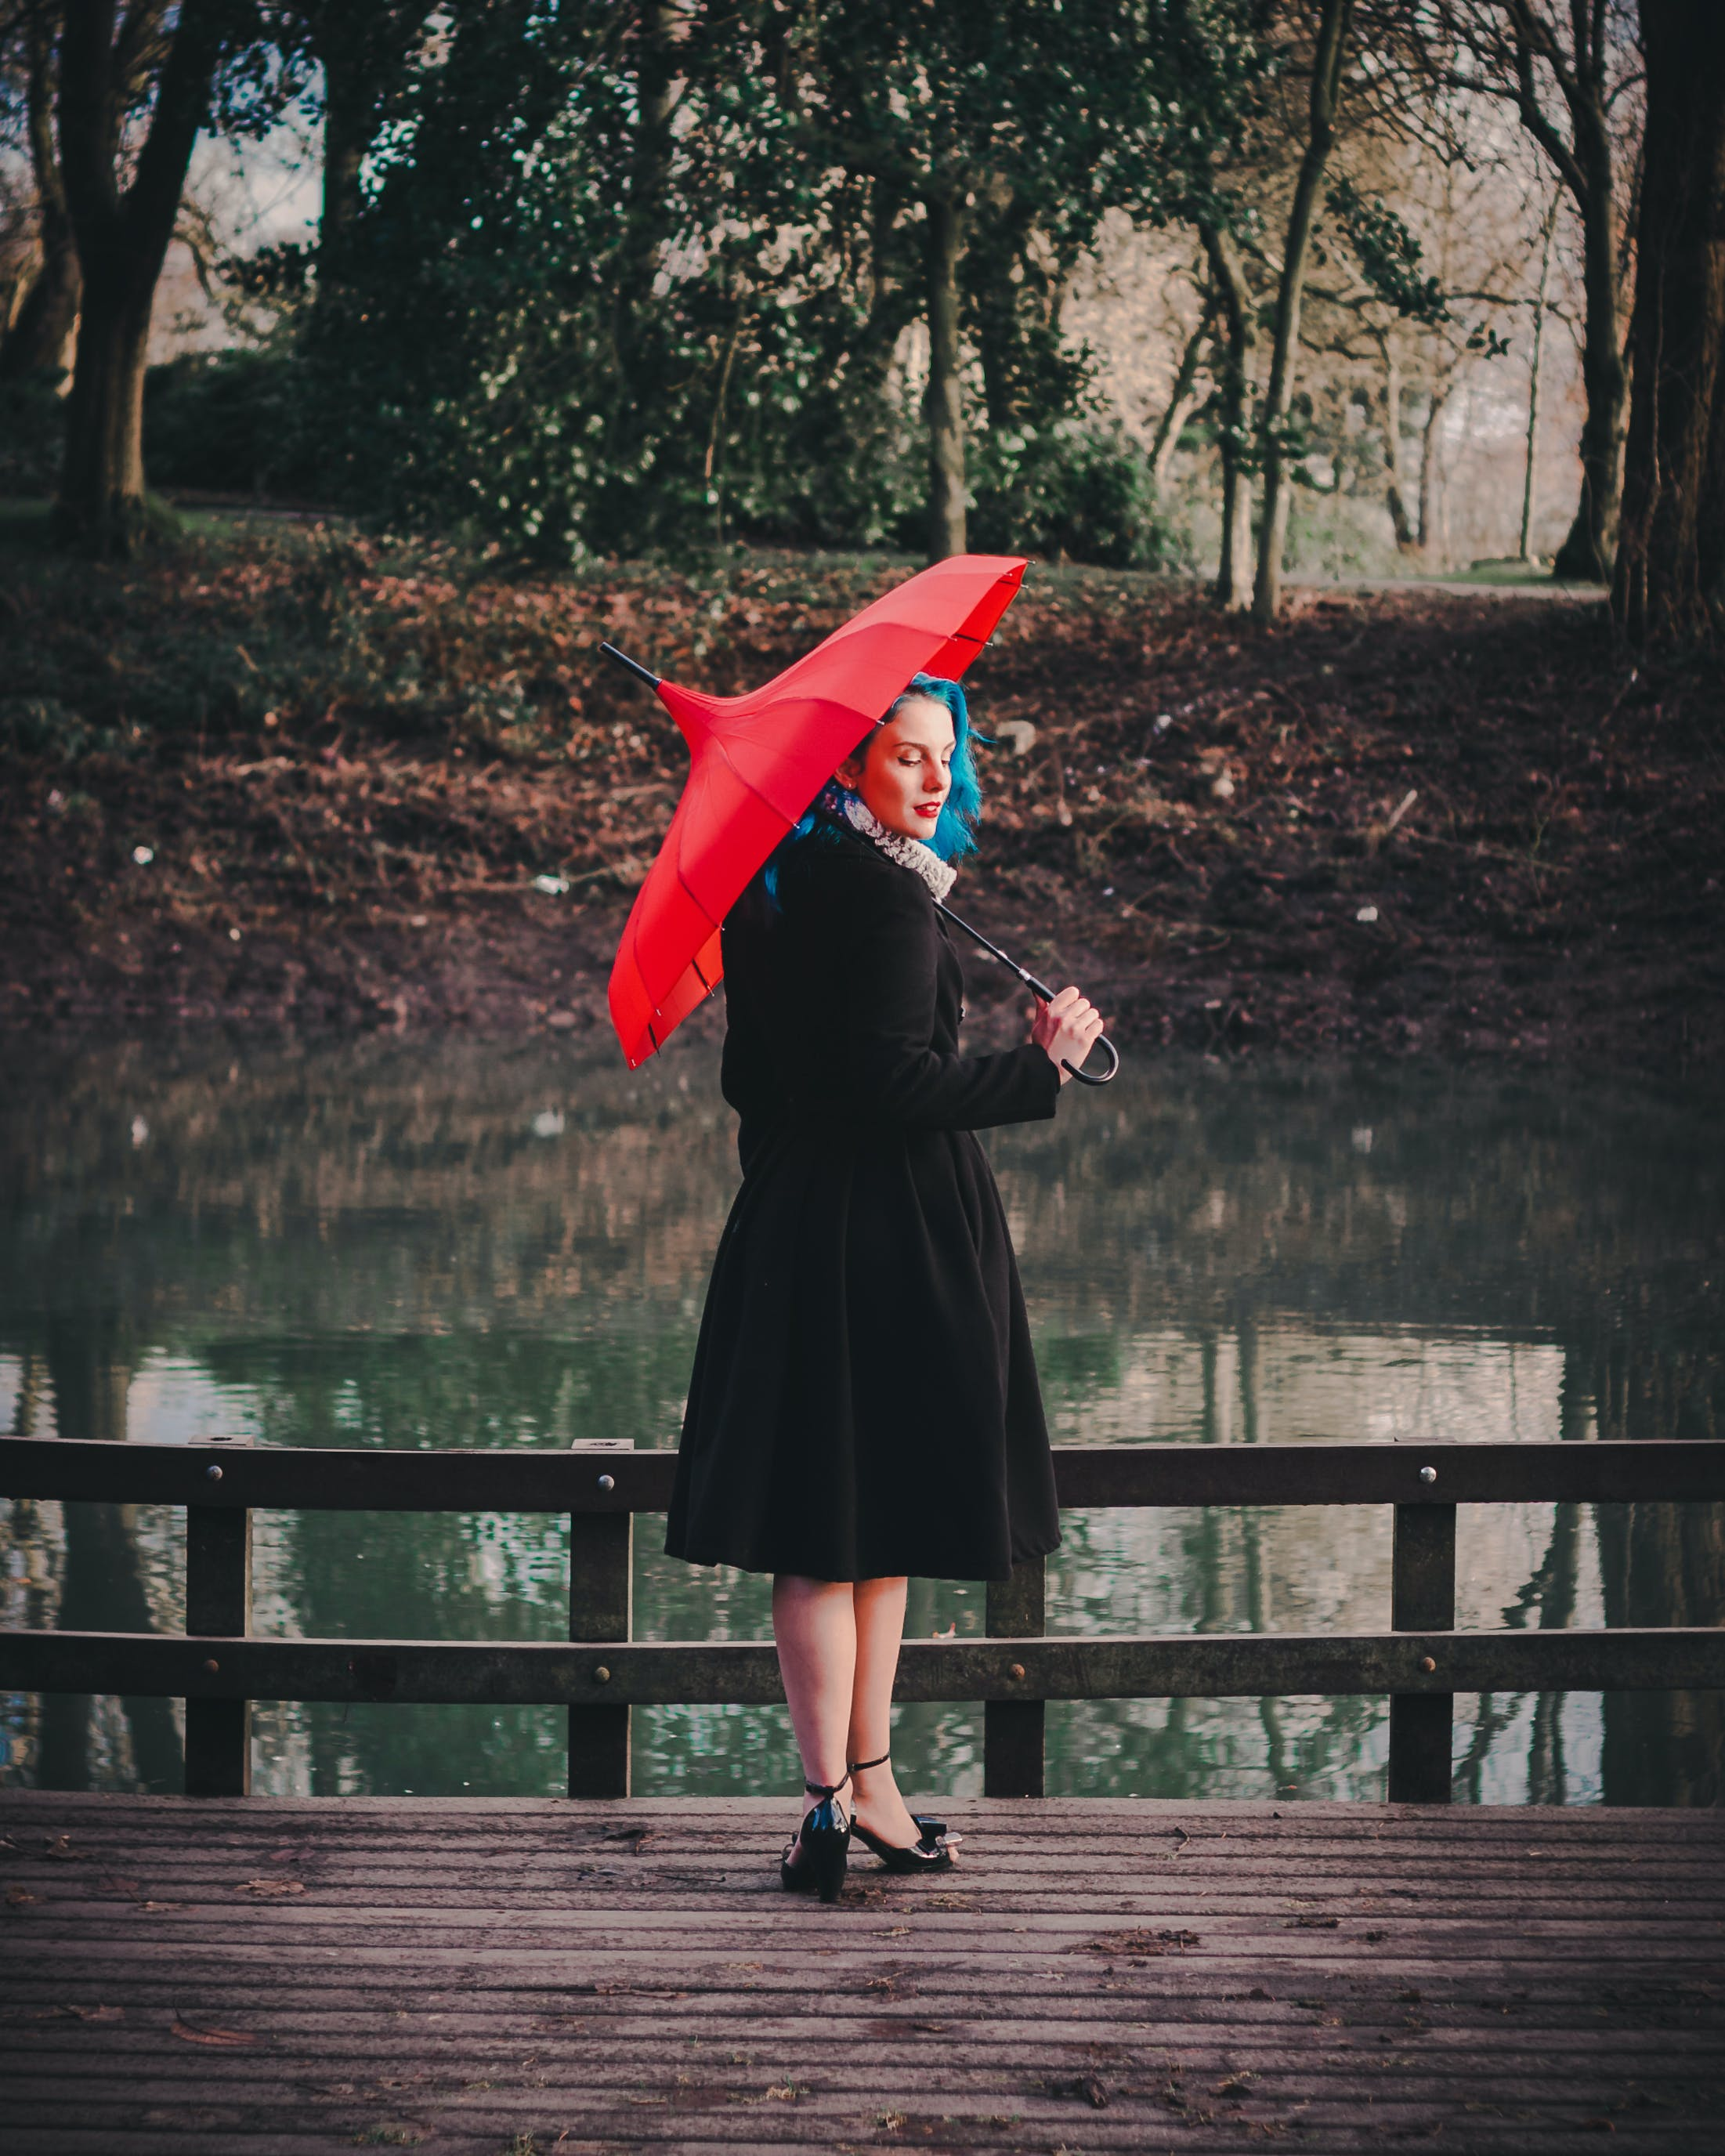 Woman Wearing Black Long-sleeved Dress Holding Red Umbrella